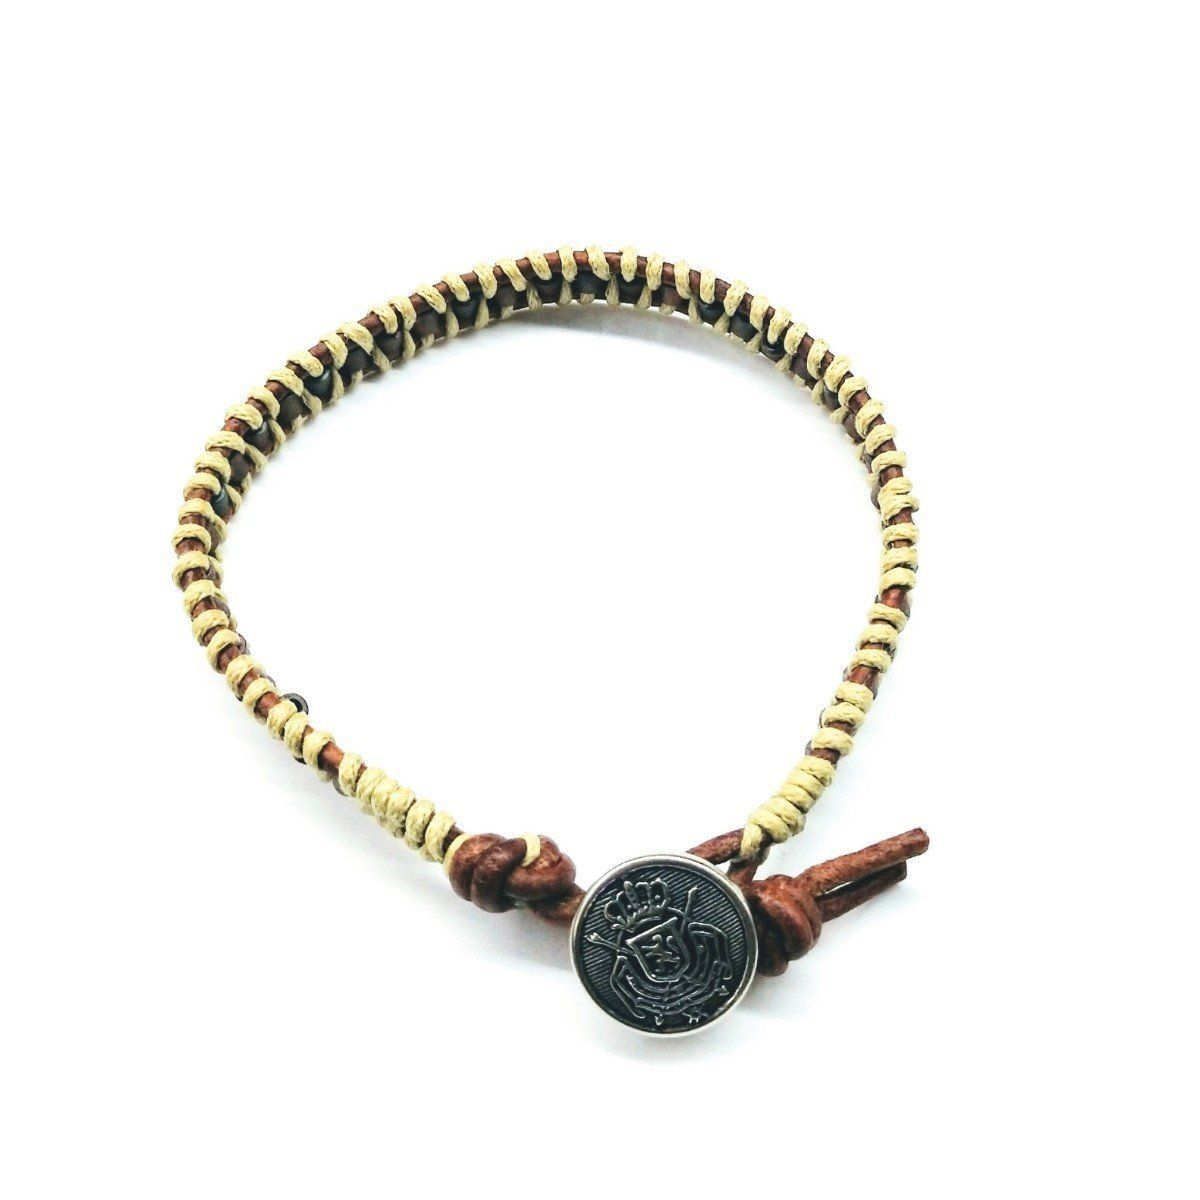 Two Tone Leather Wrap Seed Bead Button Bracelet